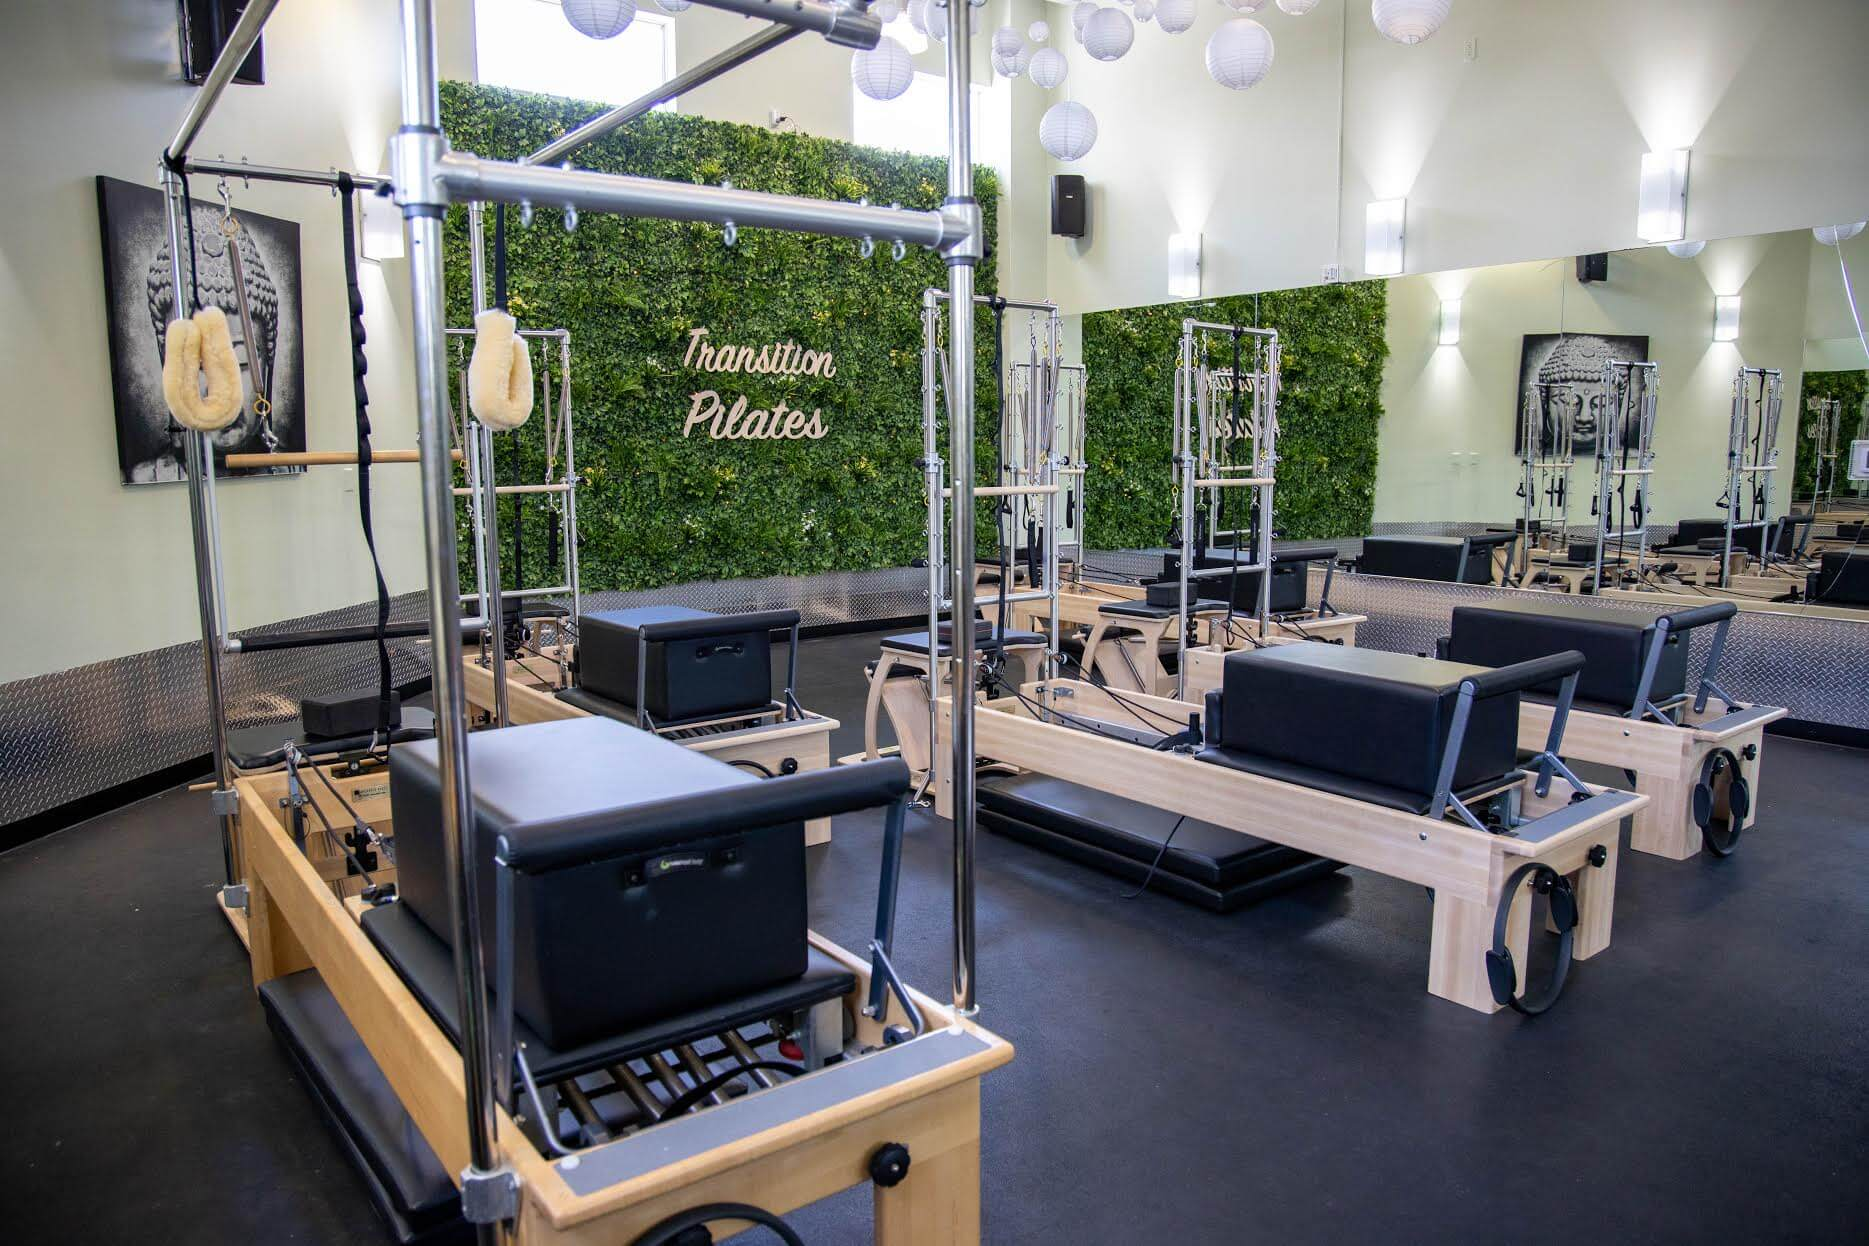 Transition Pilates